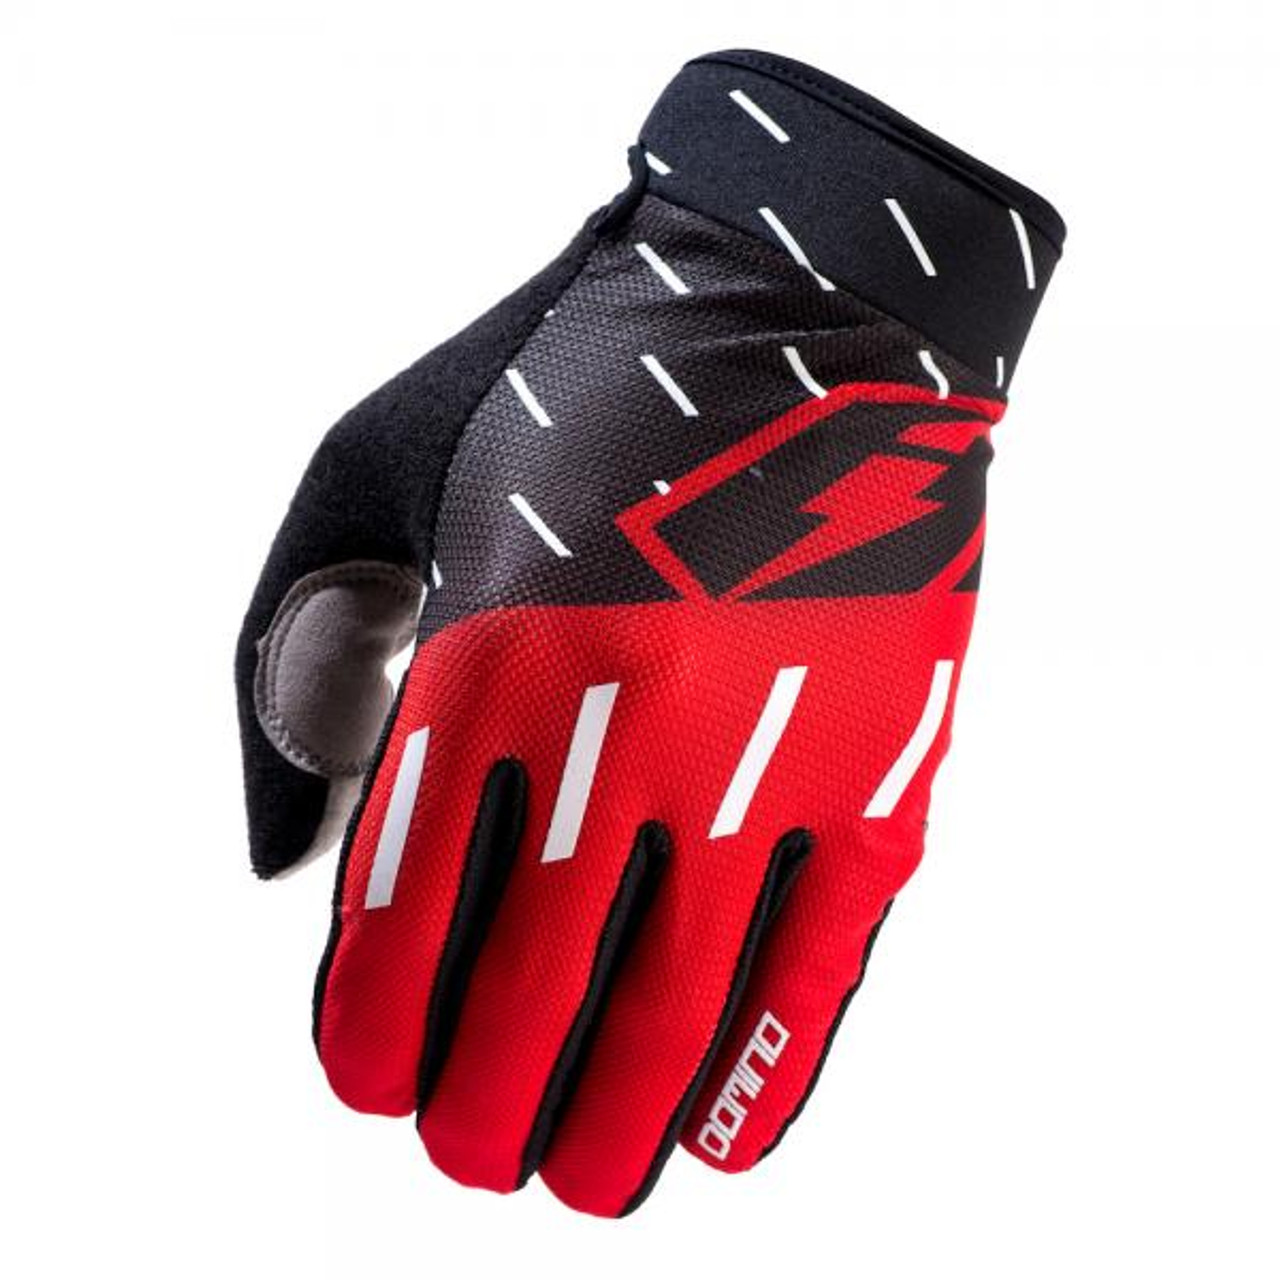 Gloves Domino, black/ red/ white